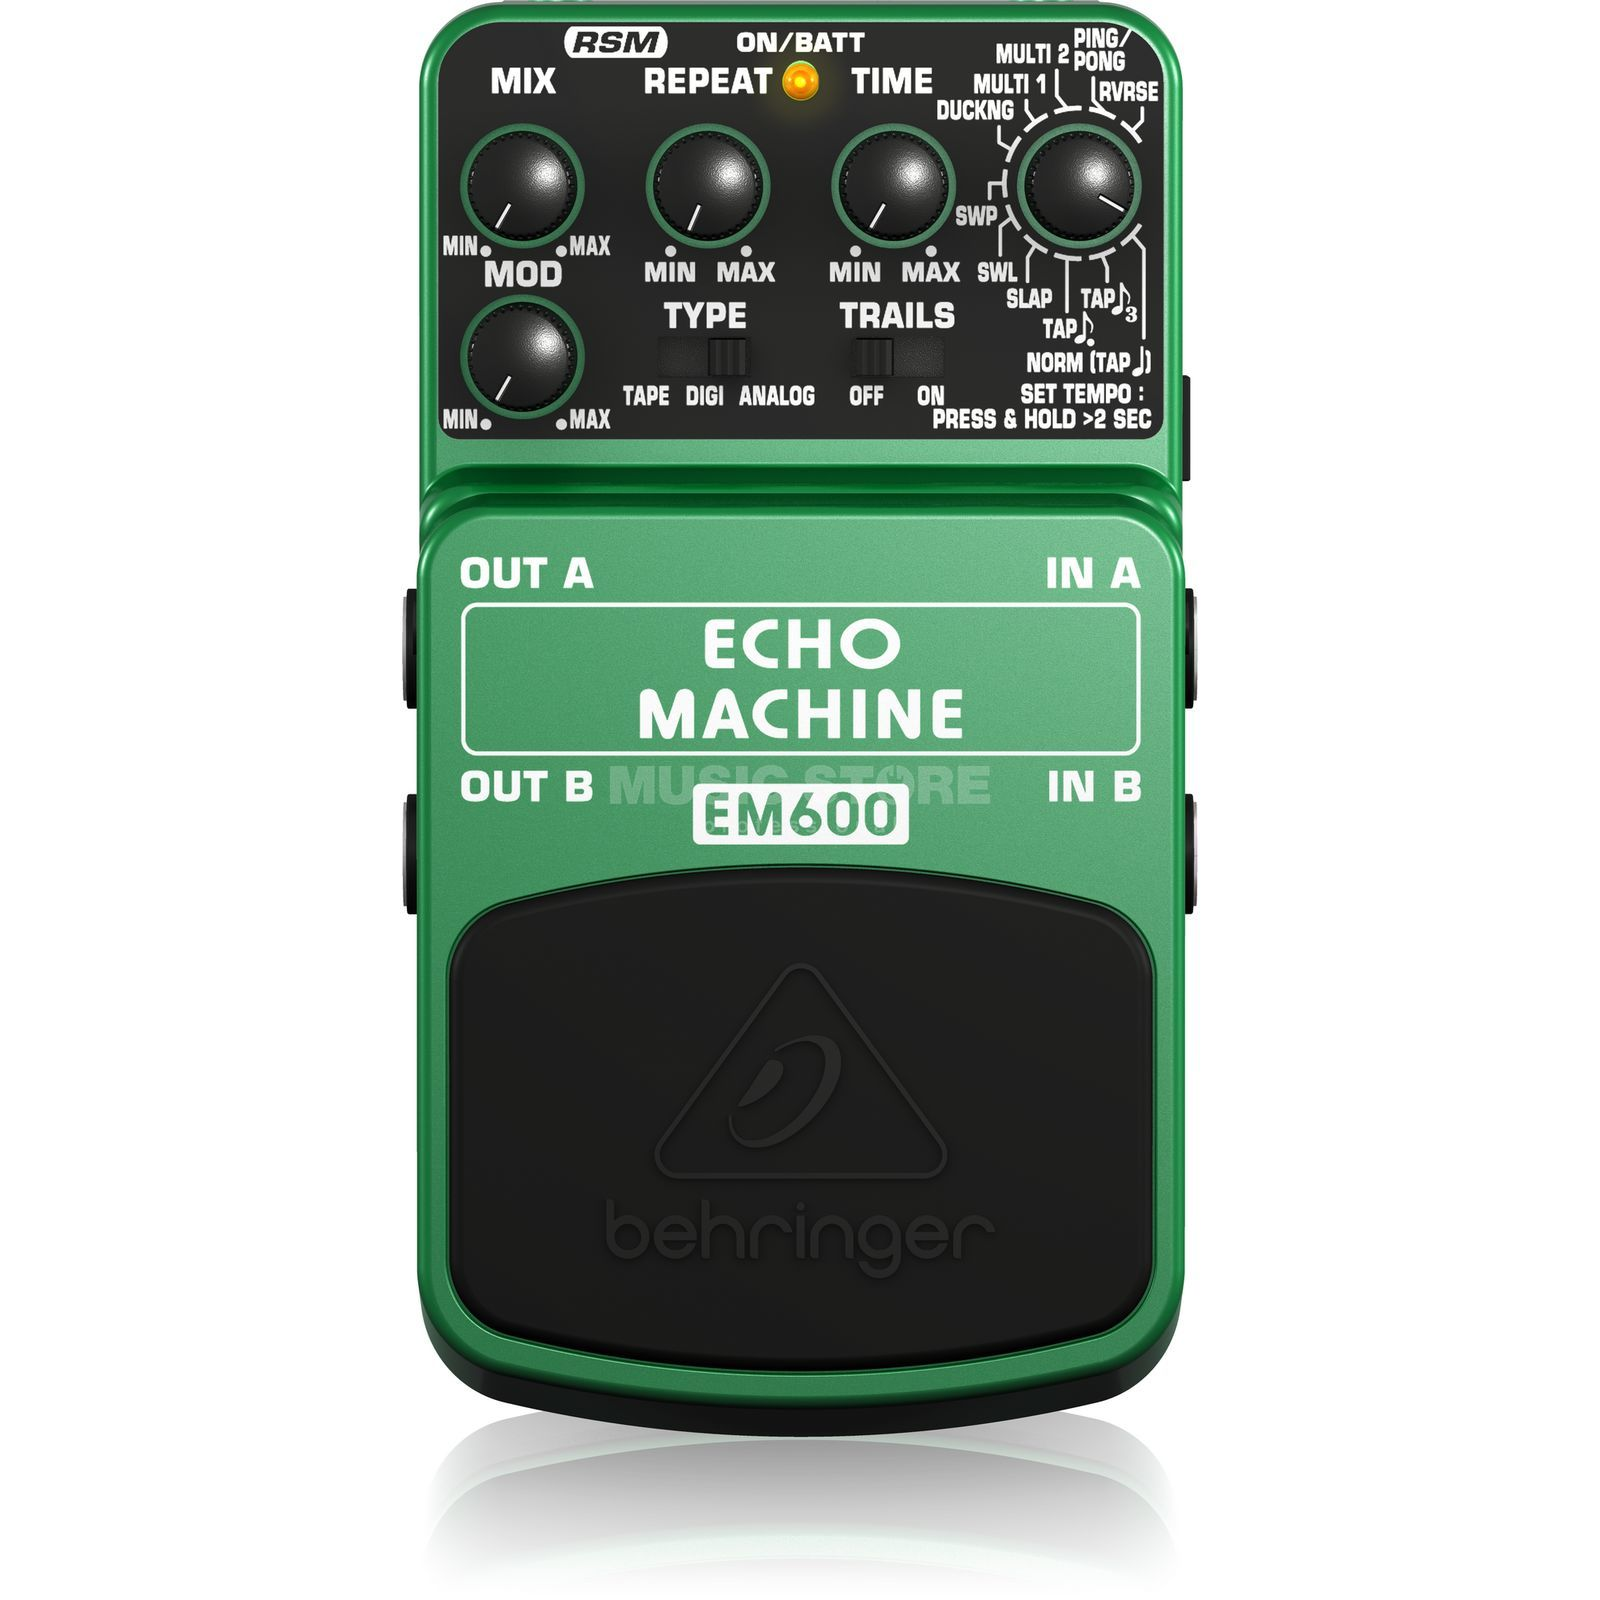 echo machine